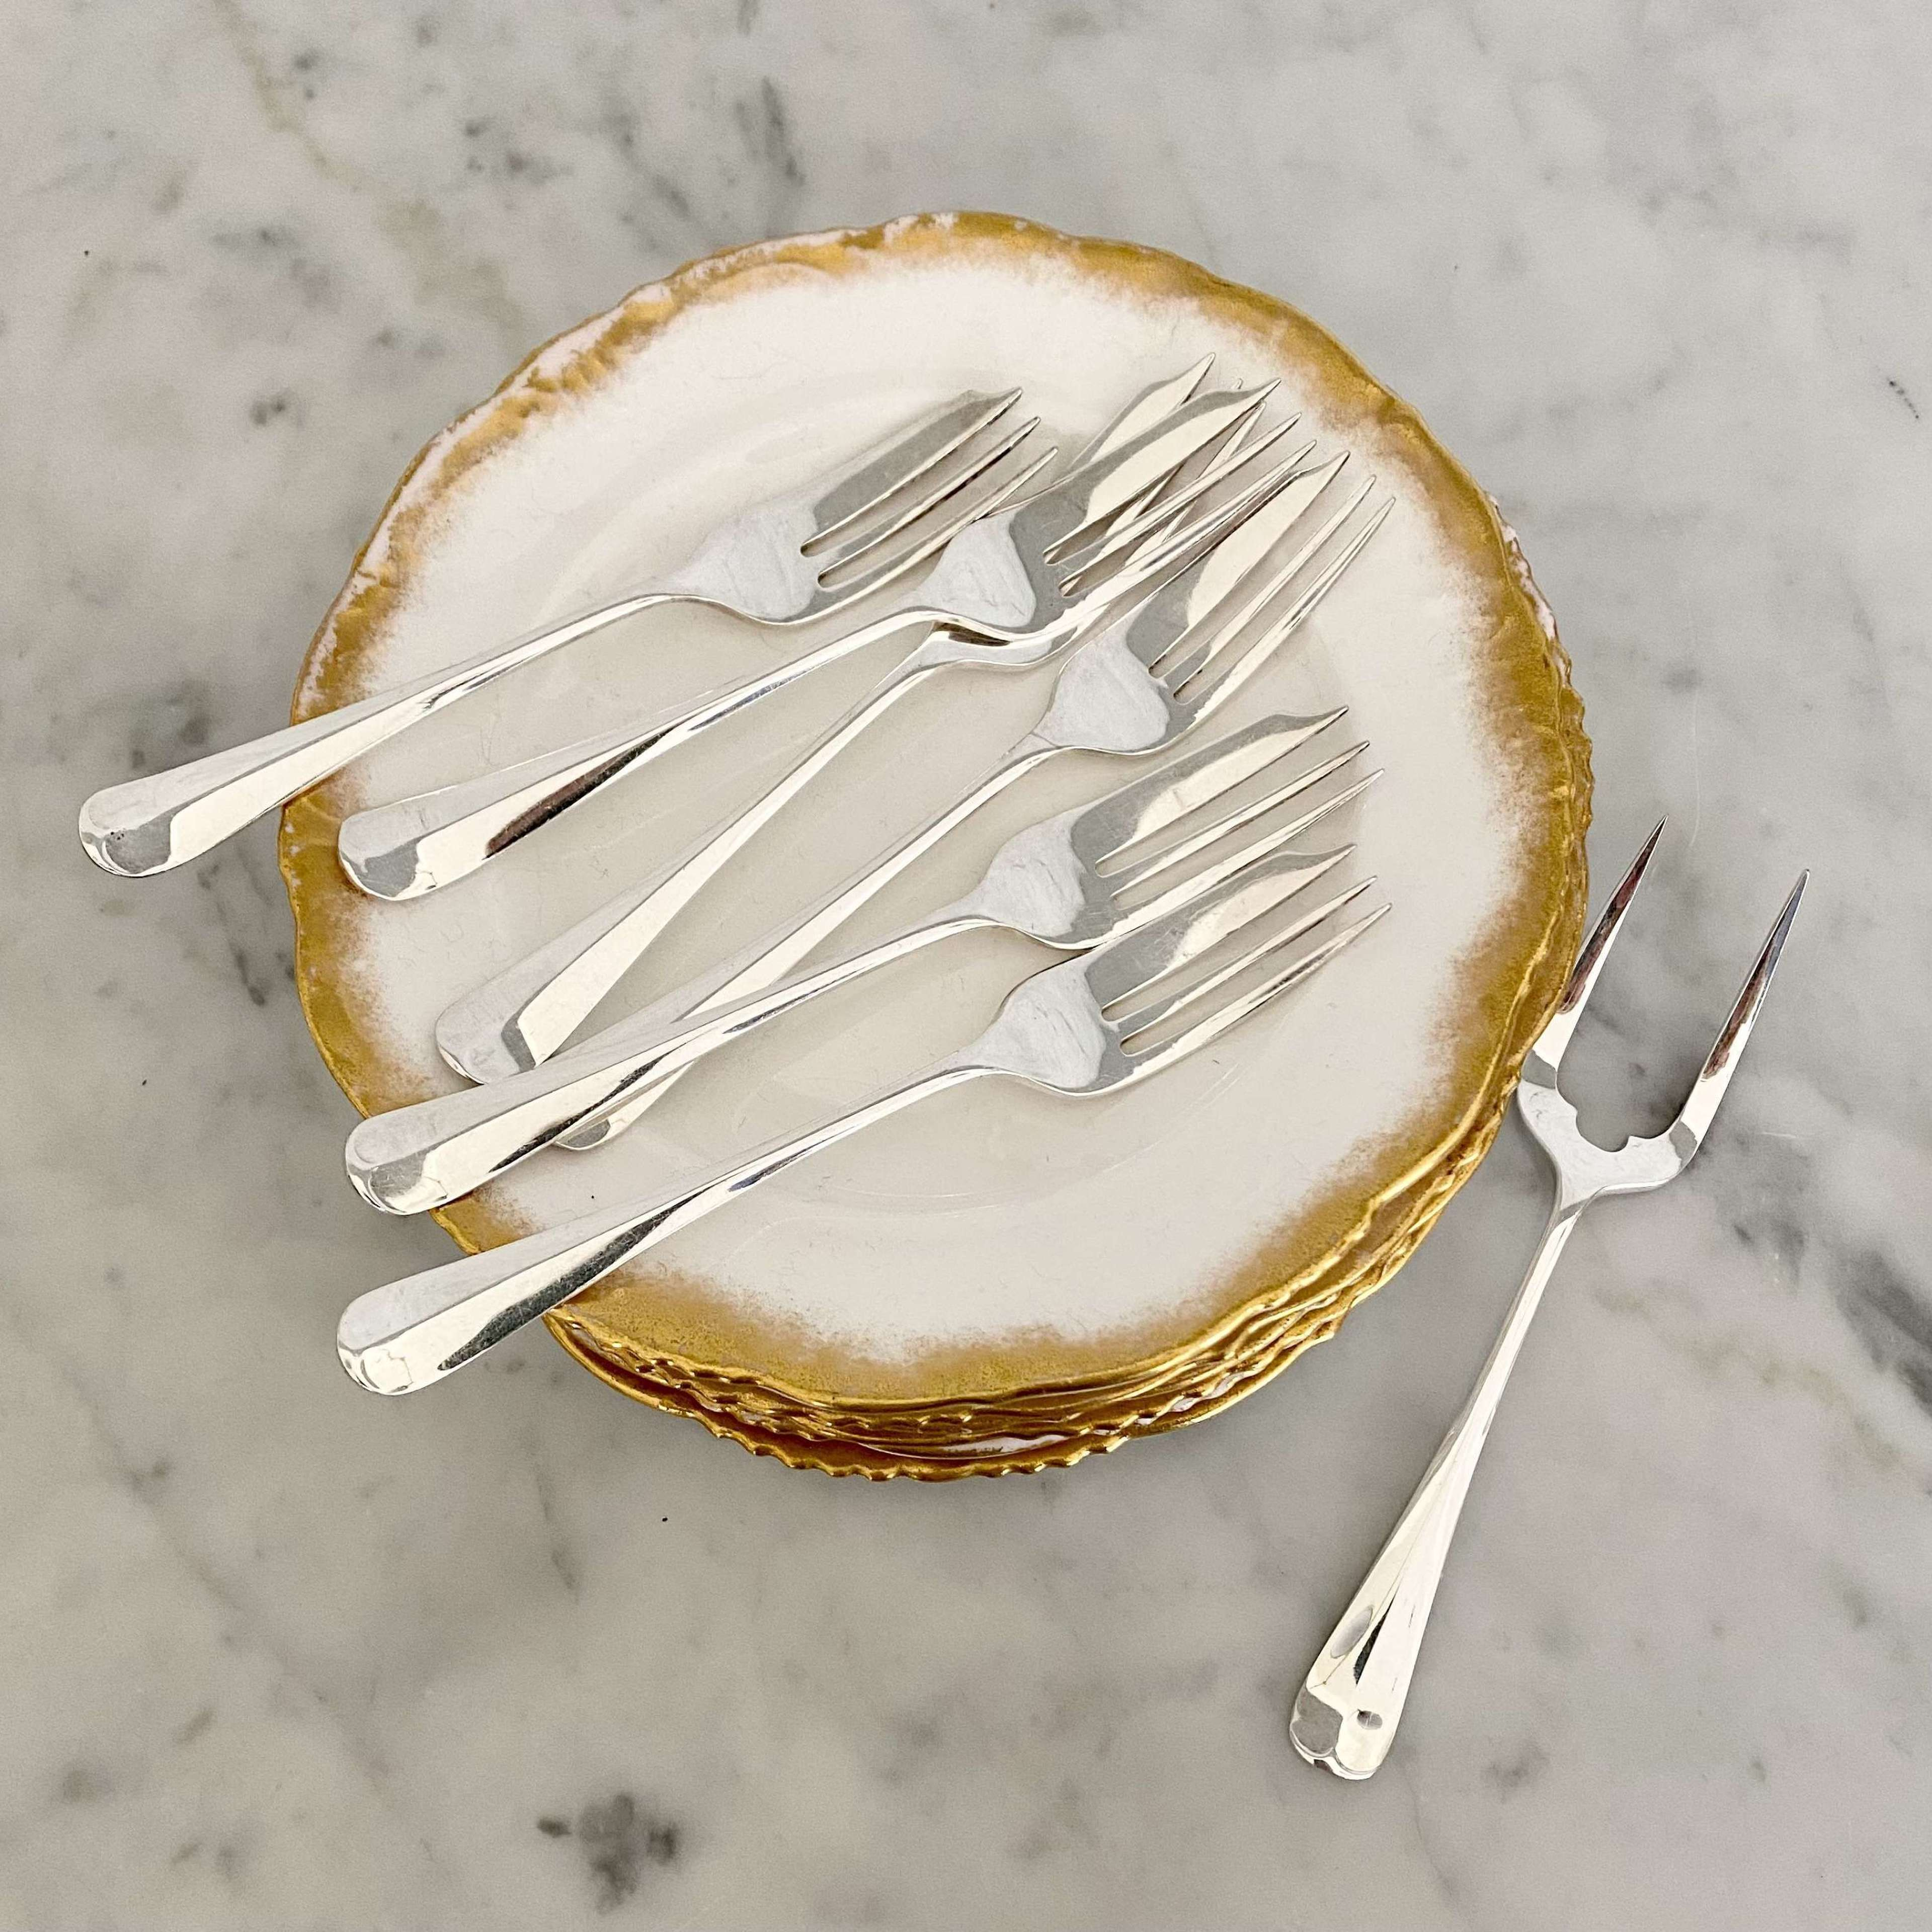 Set of Art Deco silver plated cake forks